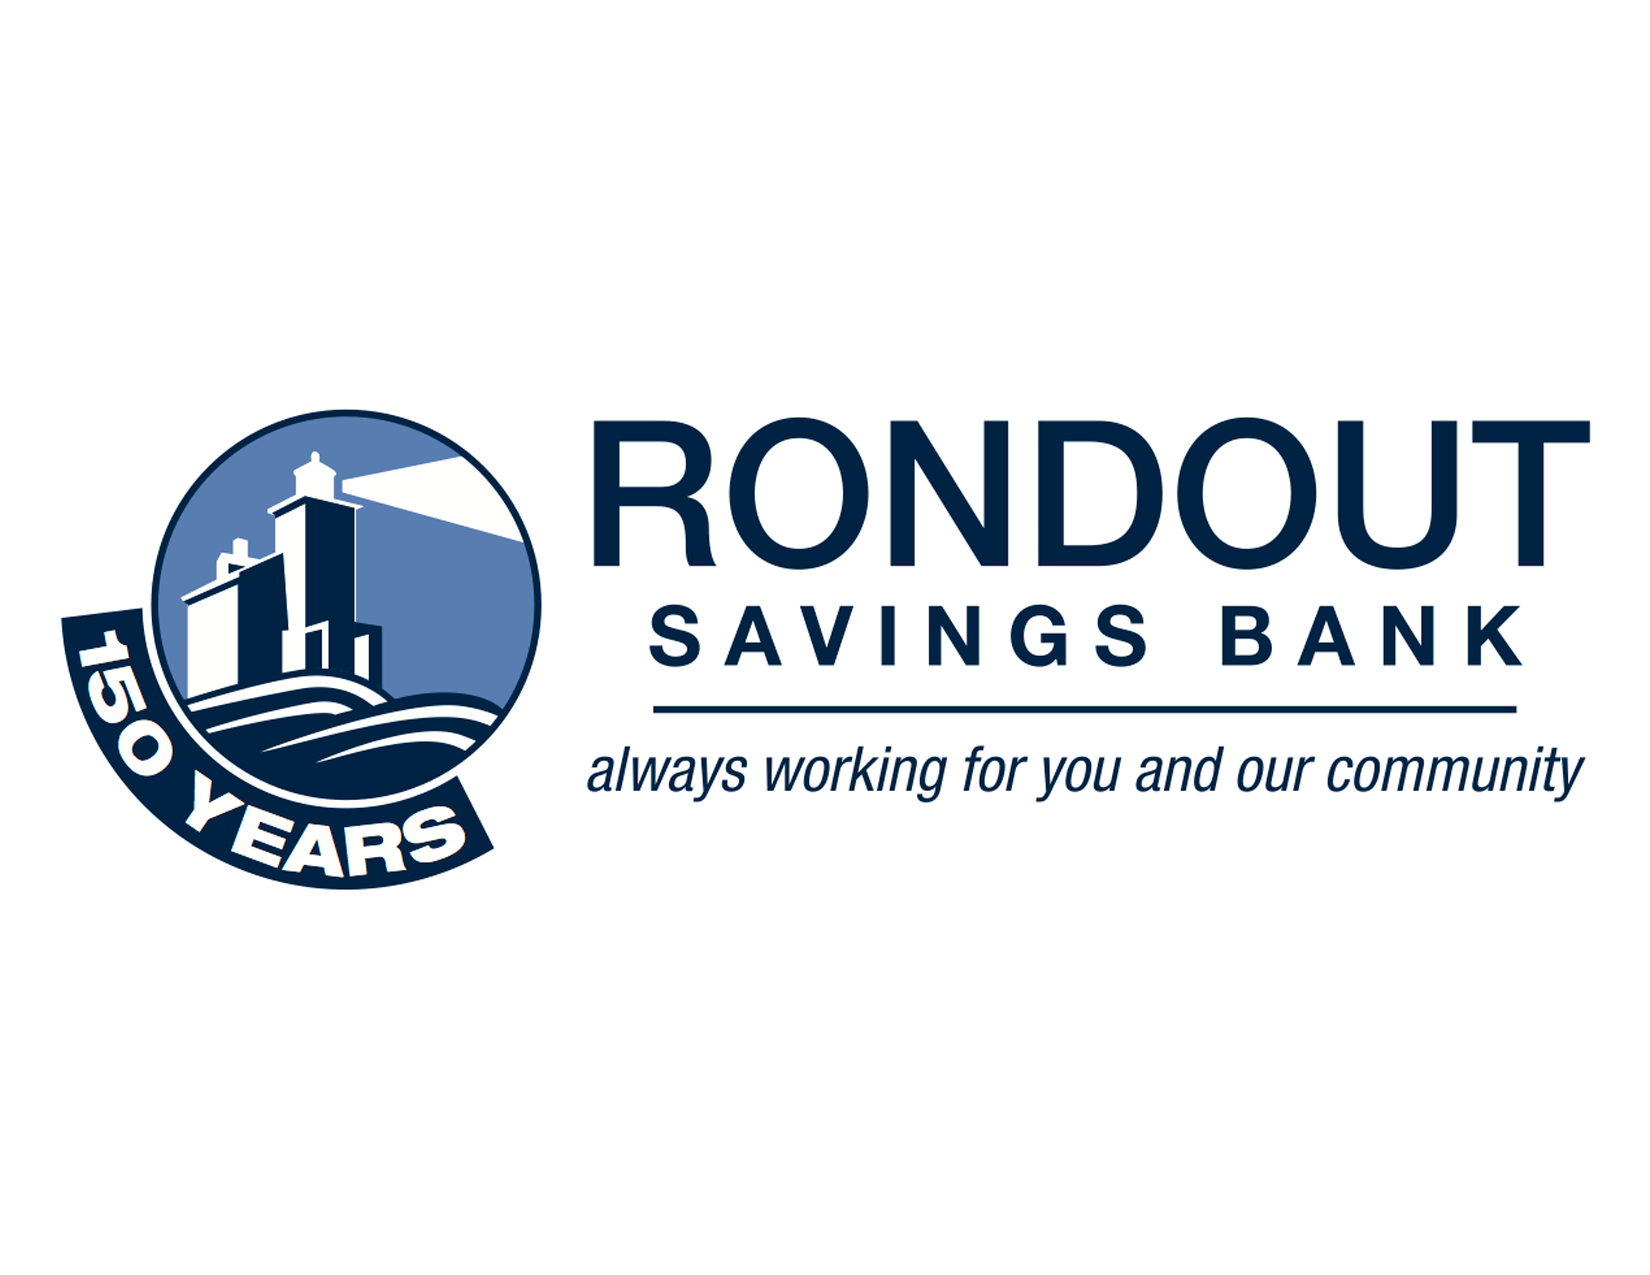 RSB-logo-w-150-years-32.png